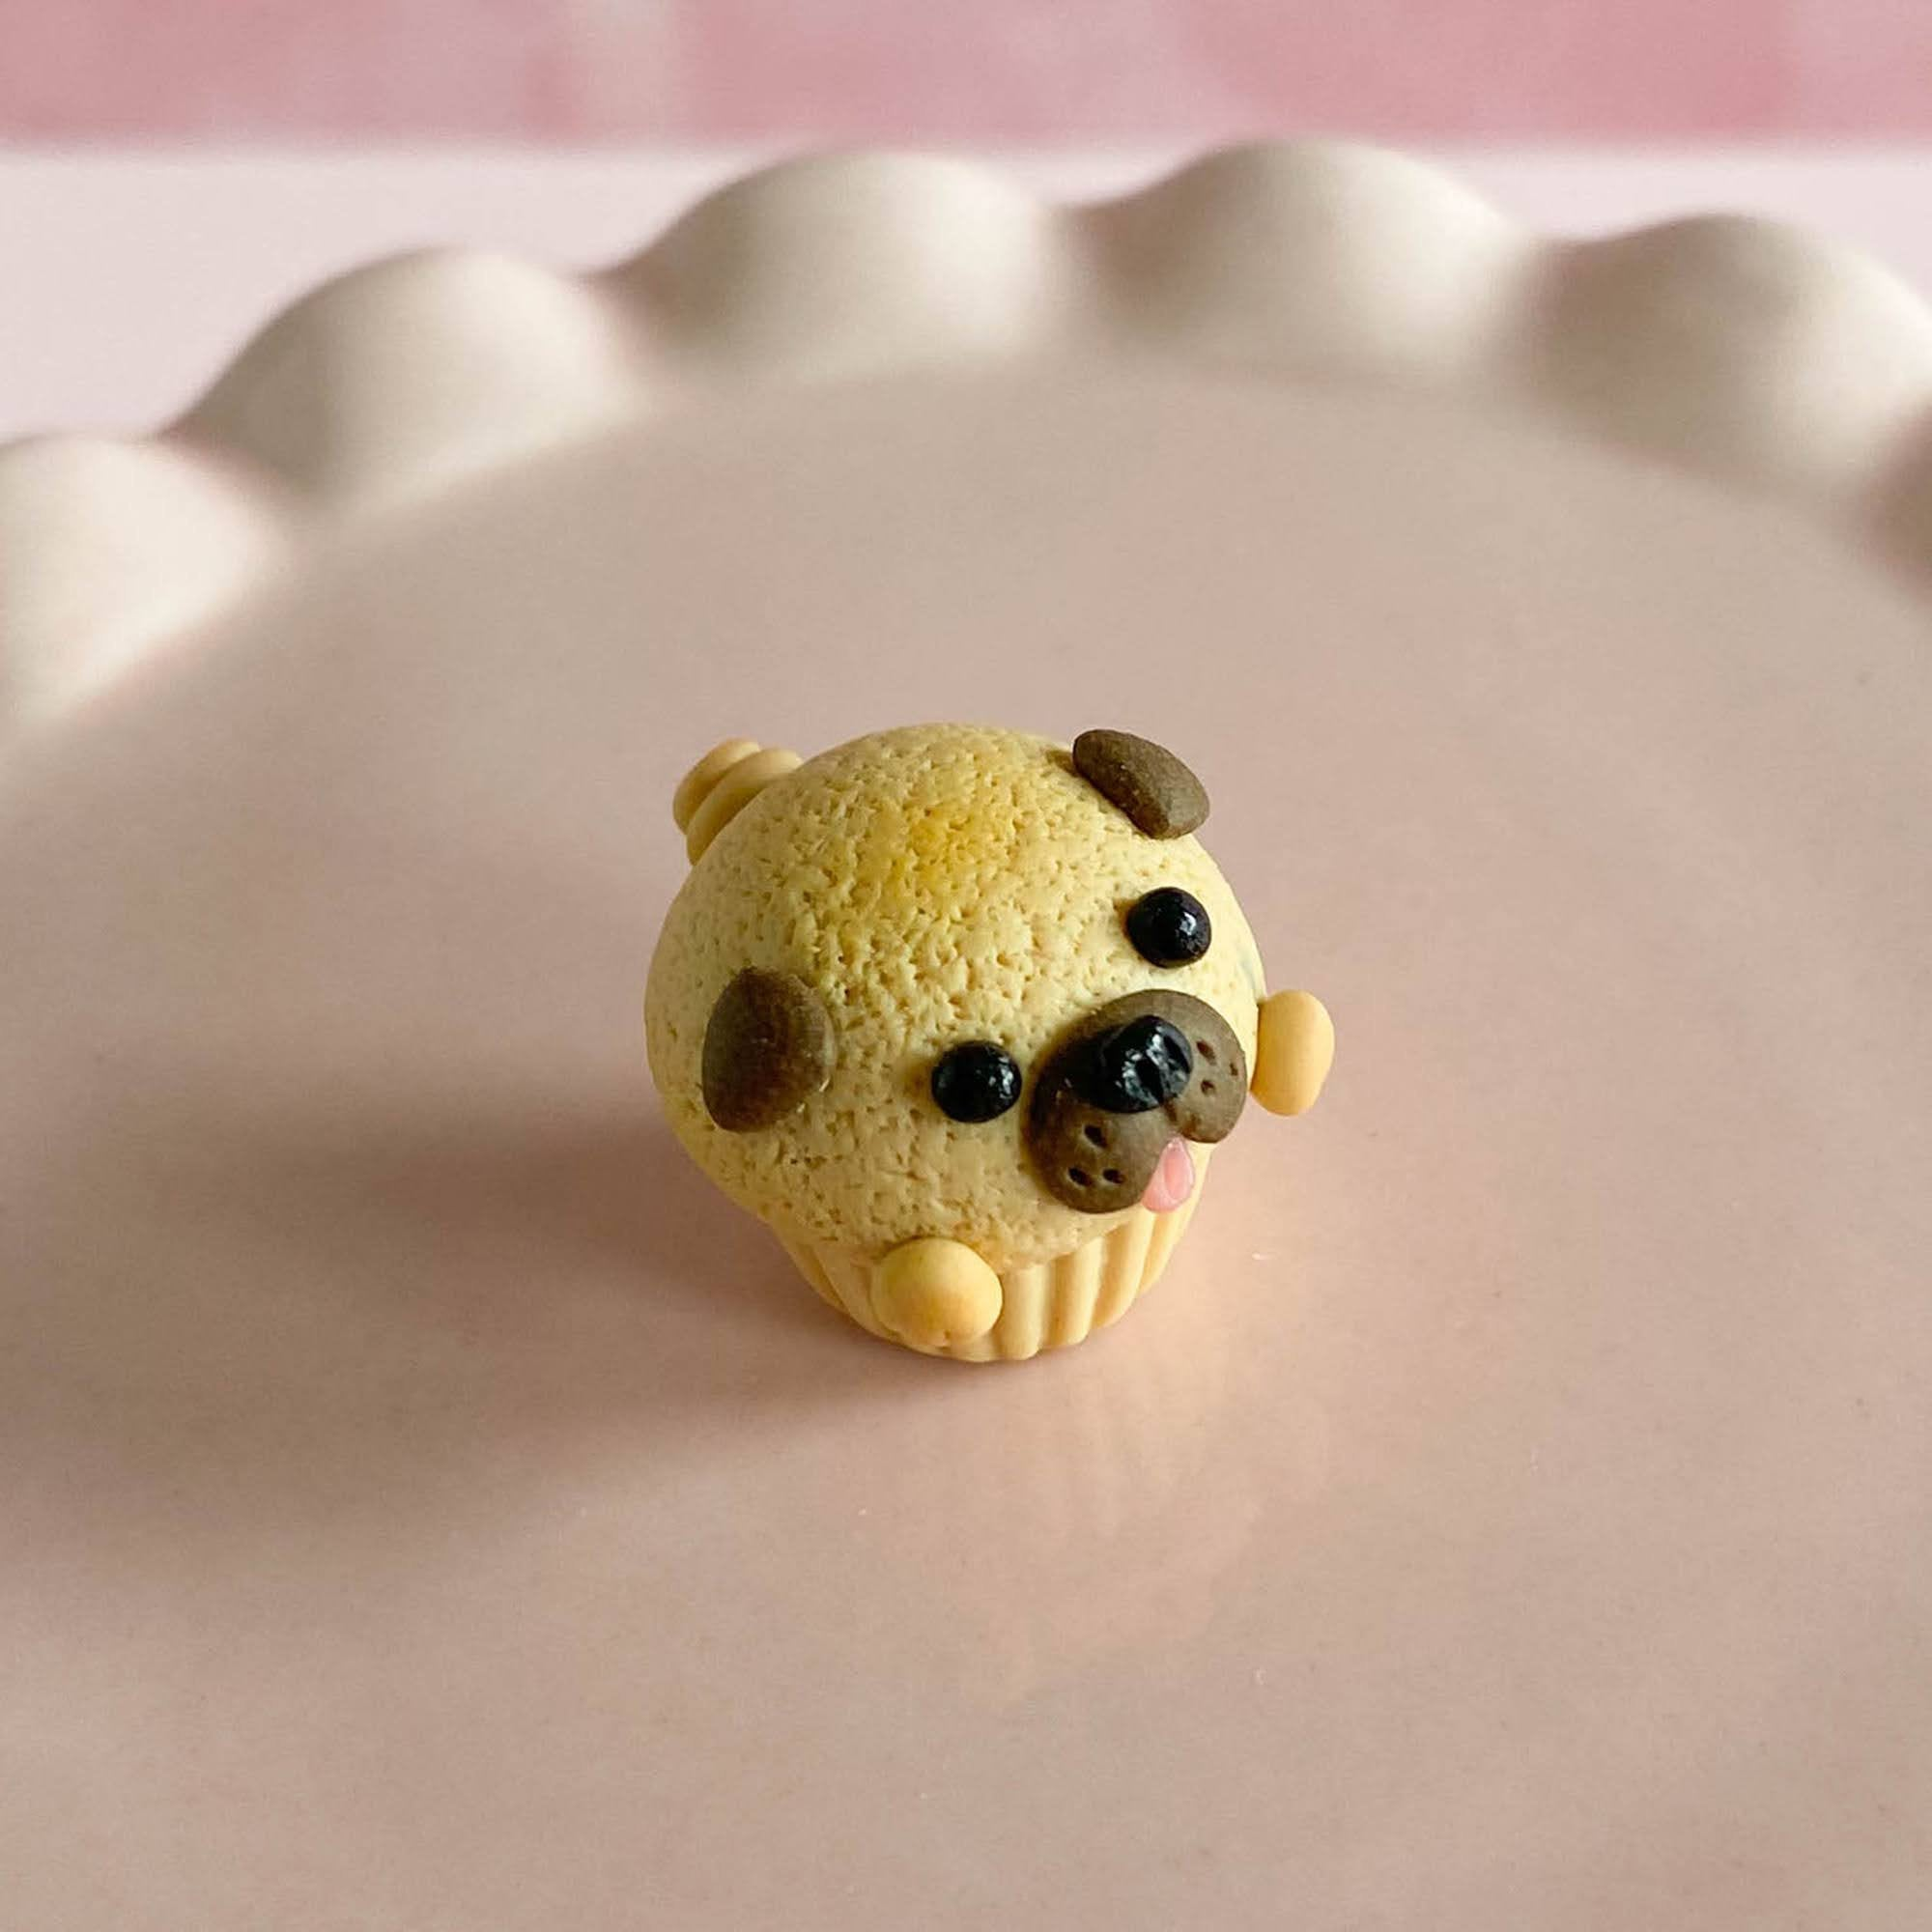 fireflyFrippery Miniature Pug Cupcake on Pink Display Stand